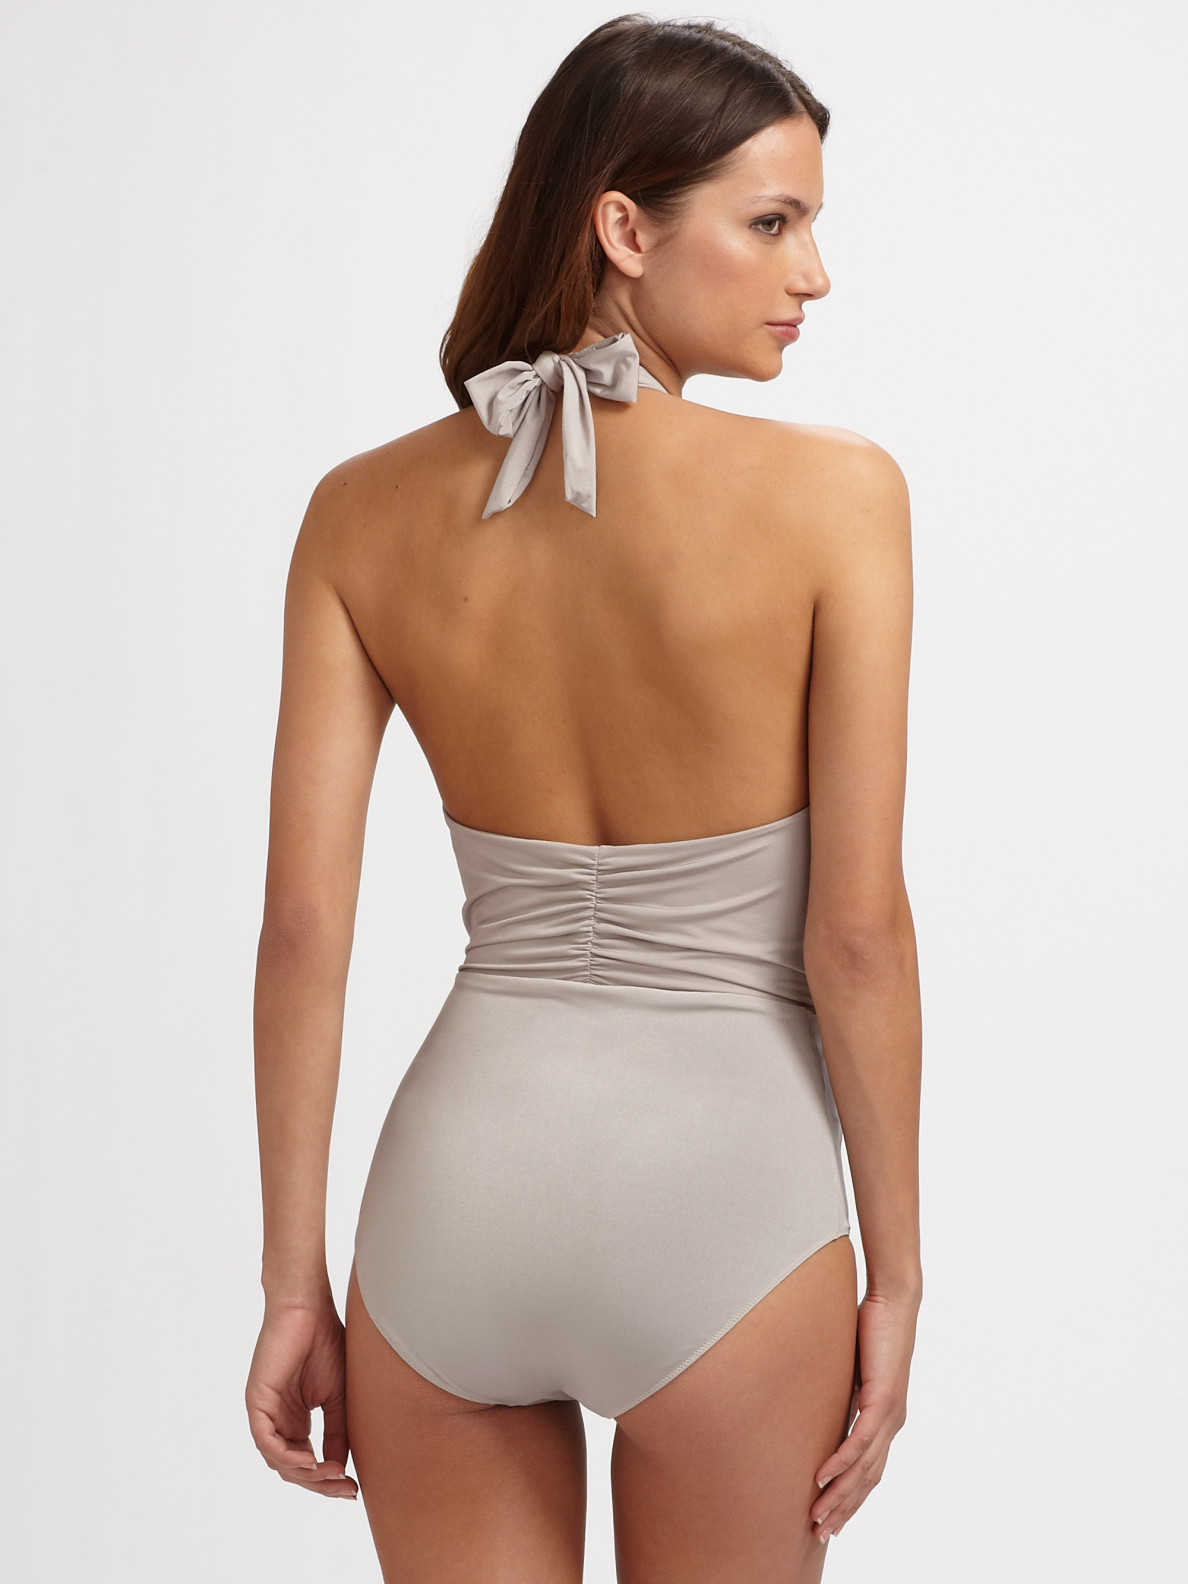 lyst - clube bossa deep plunge one piece swimsuit in gray